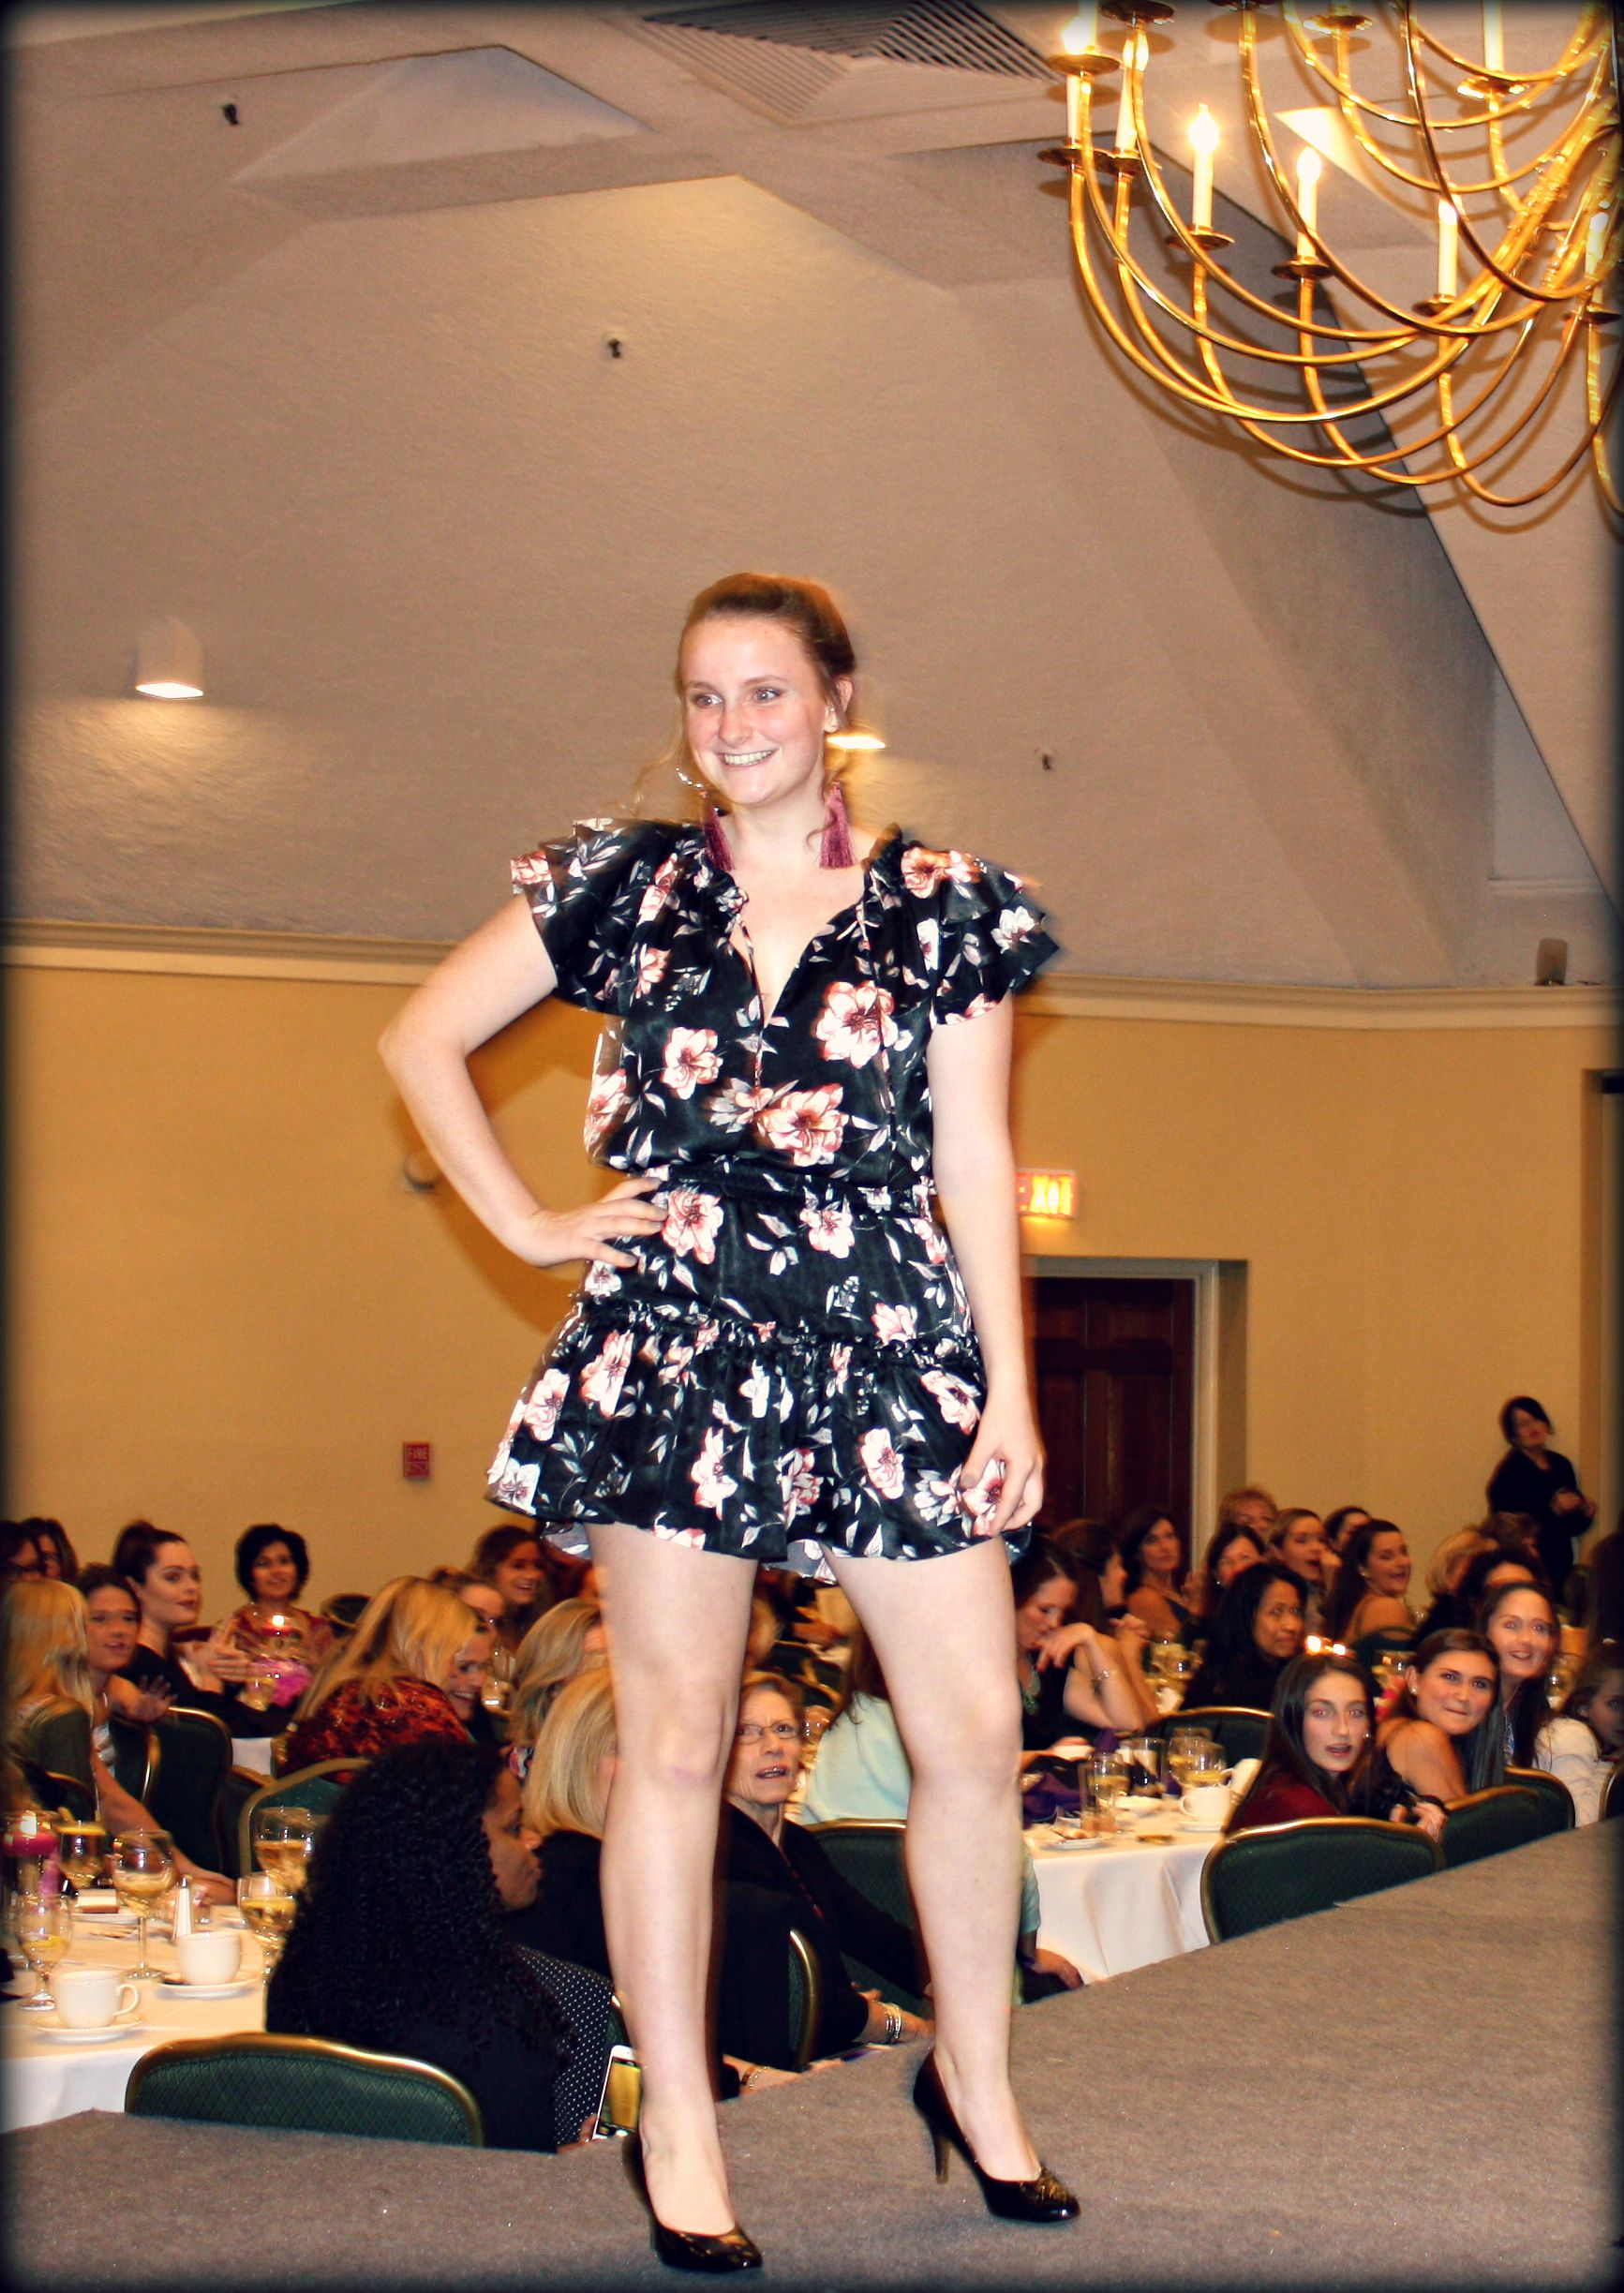 It was a fun evening at Whitemarsh Valley Country Club